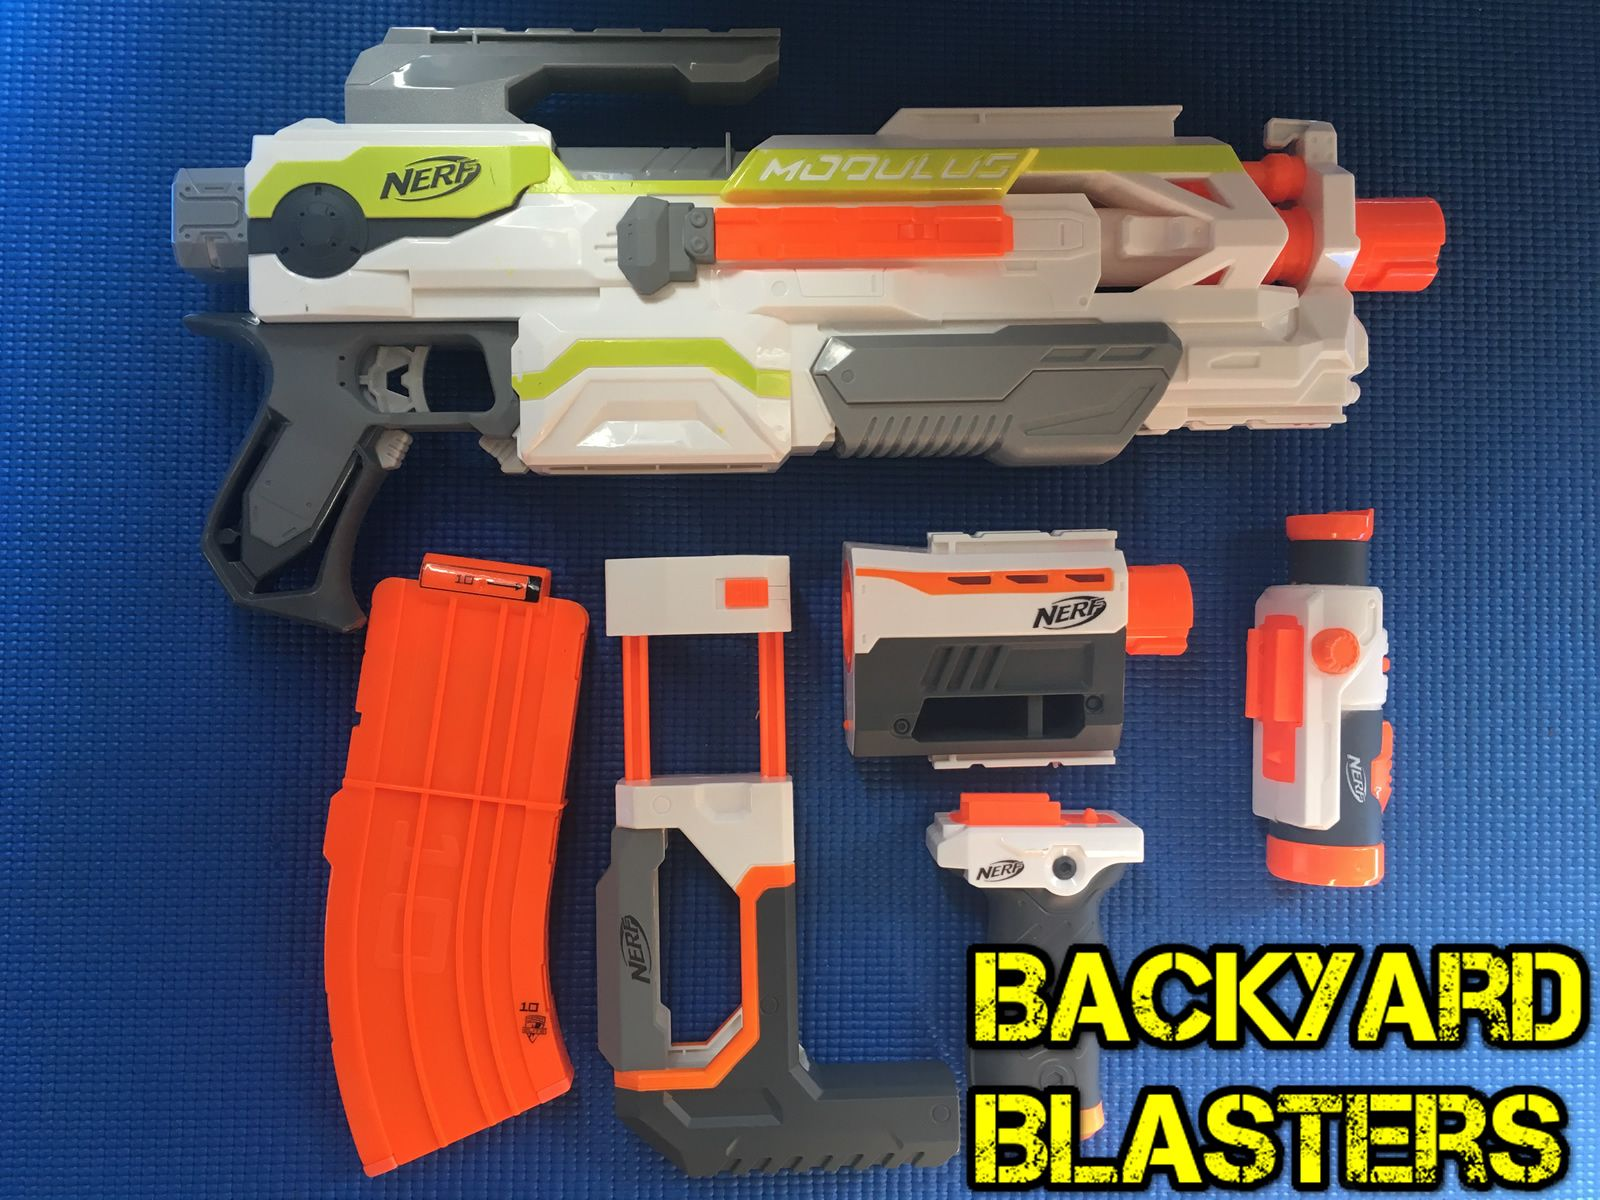 Name the blaster - comment down below! #nerf #nerfwar #nerfgun #nerfwars